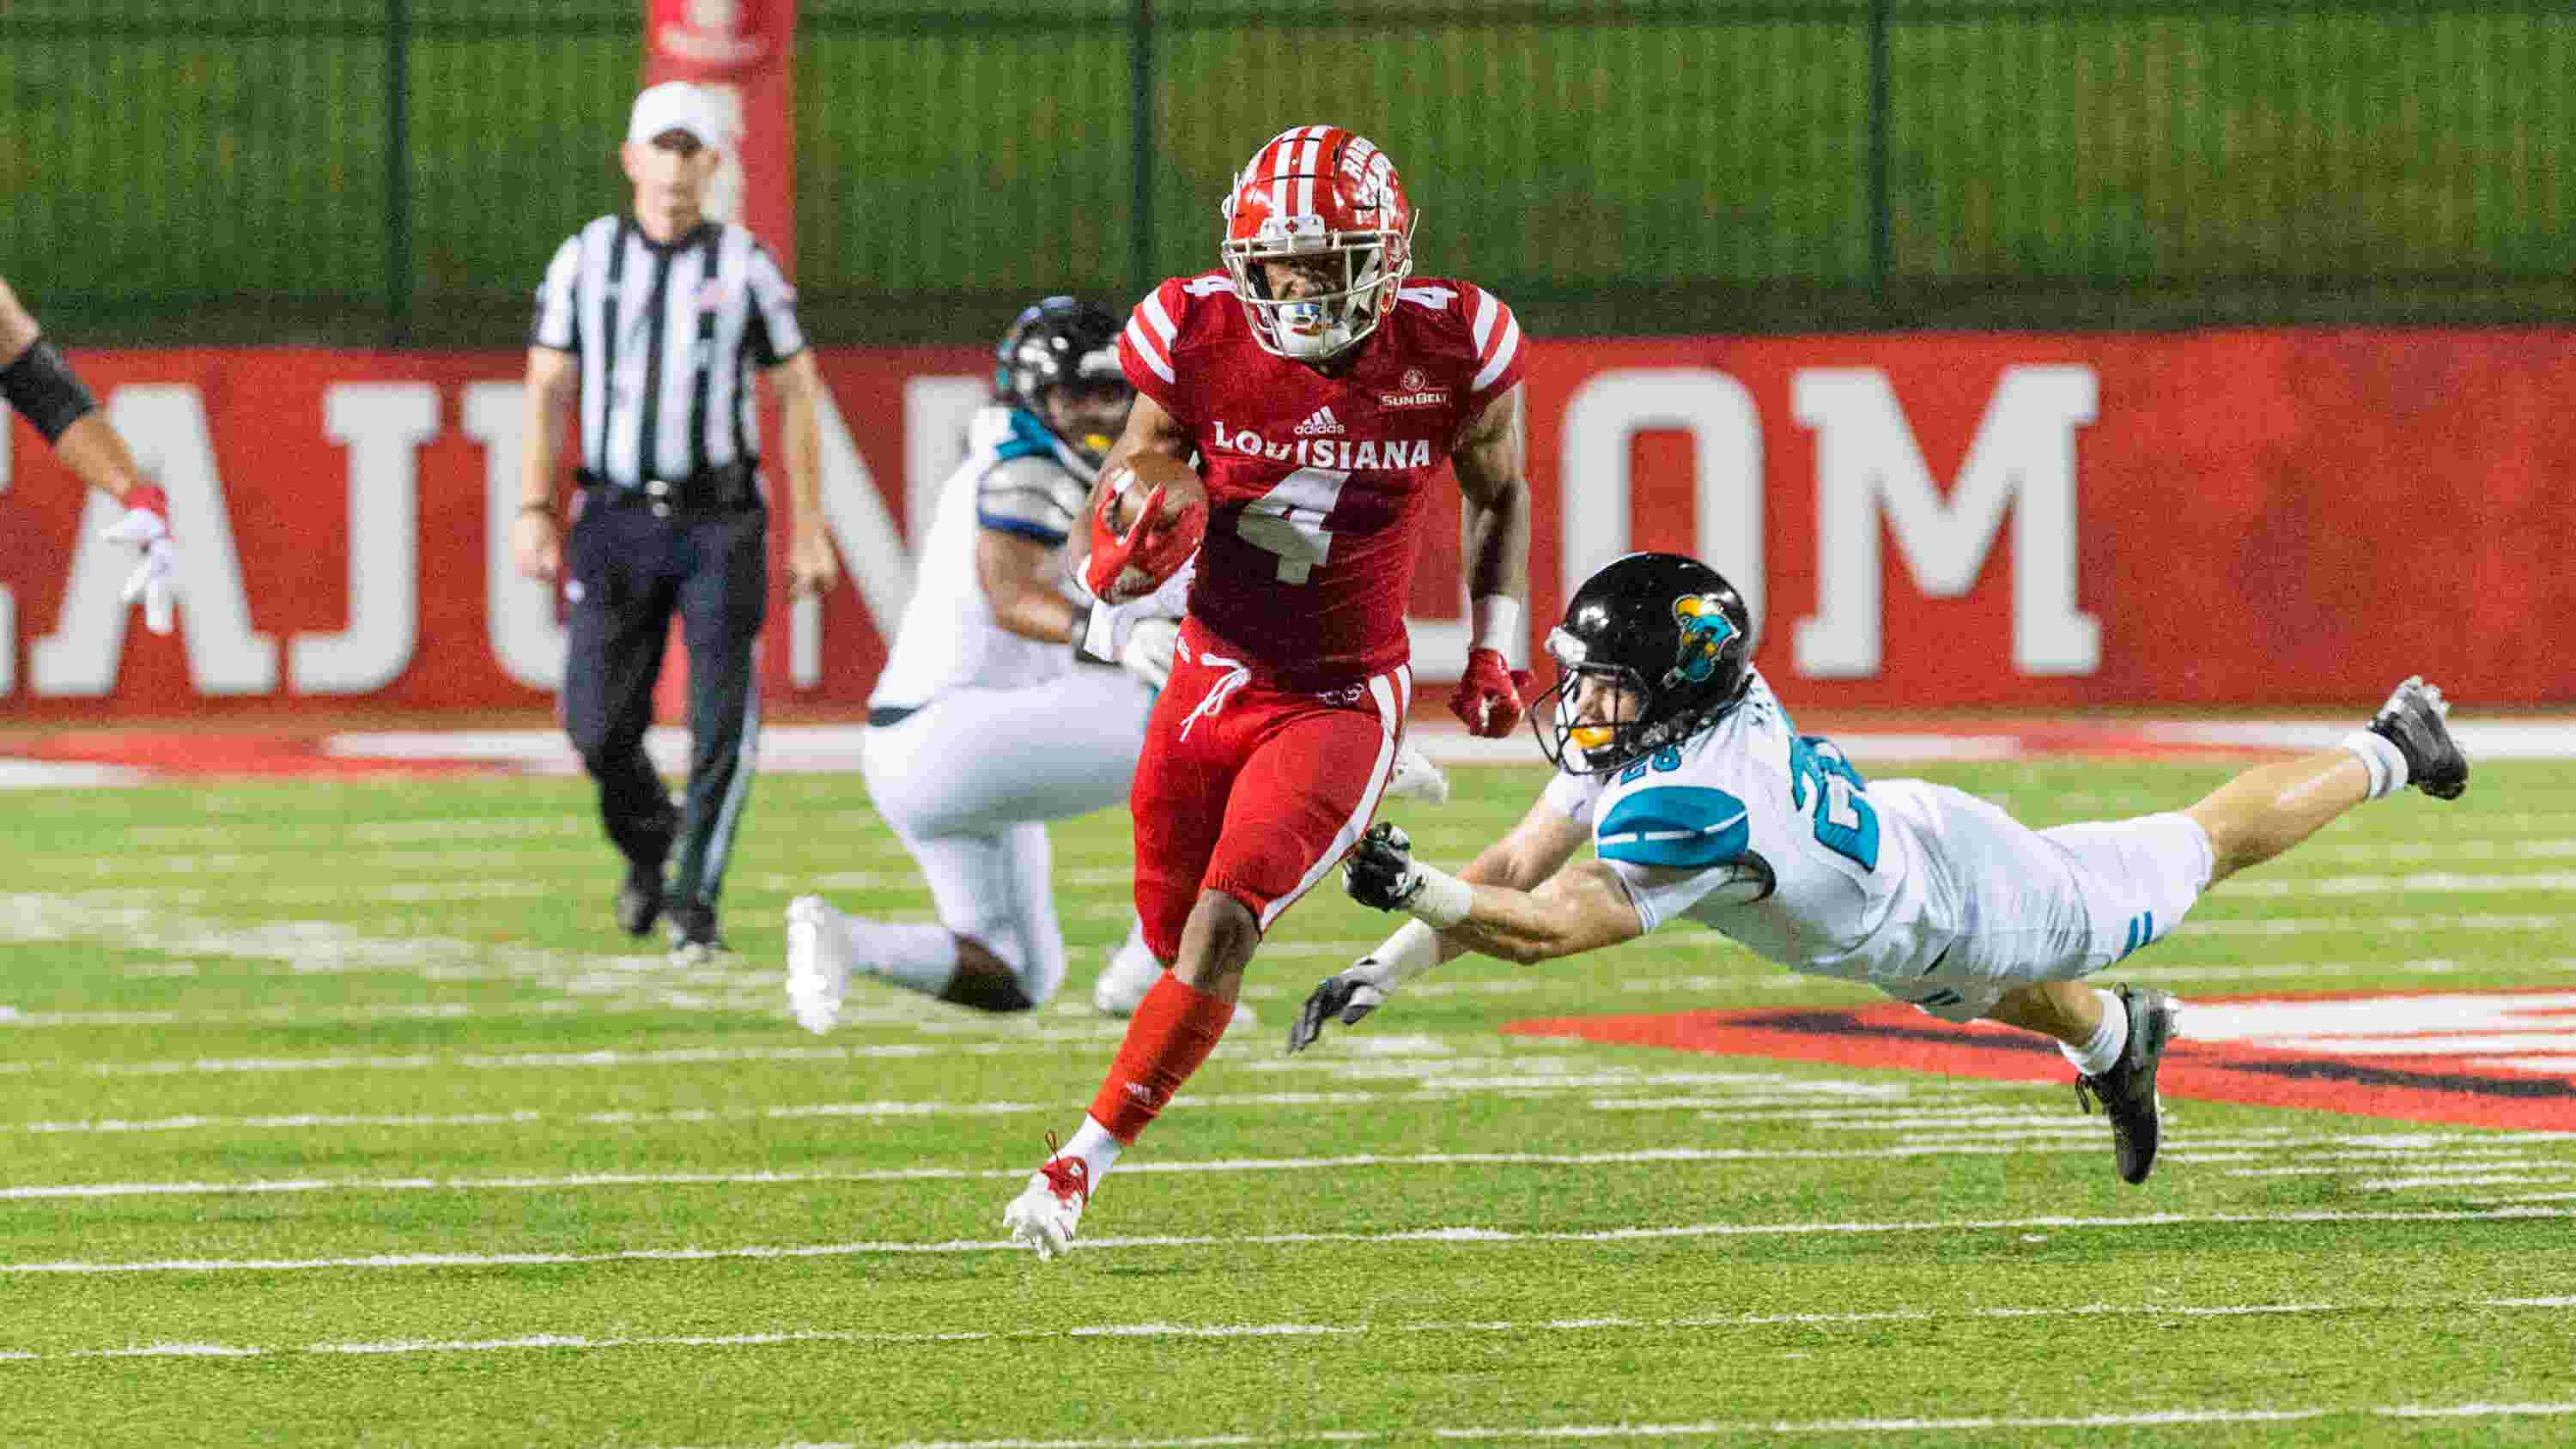 Ull Football Issues From Loss Behind Cajuns Faces No 1 Alabama Next